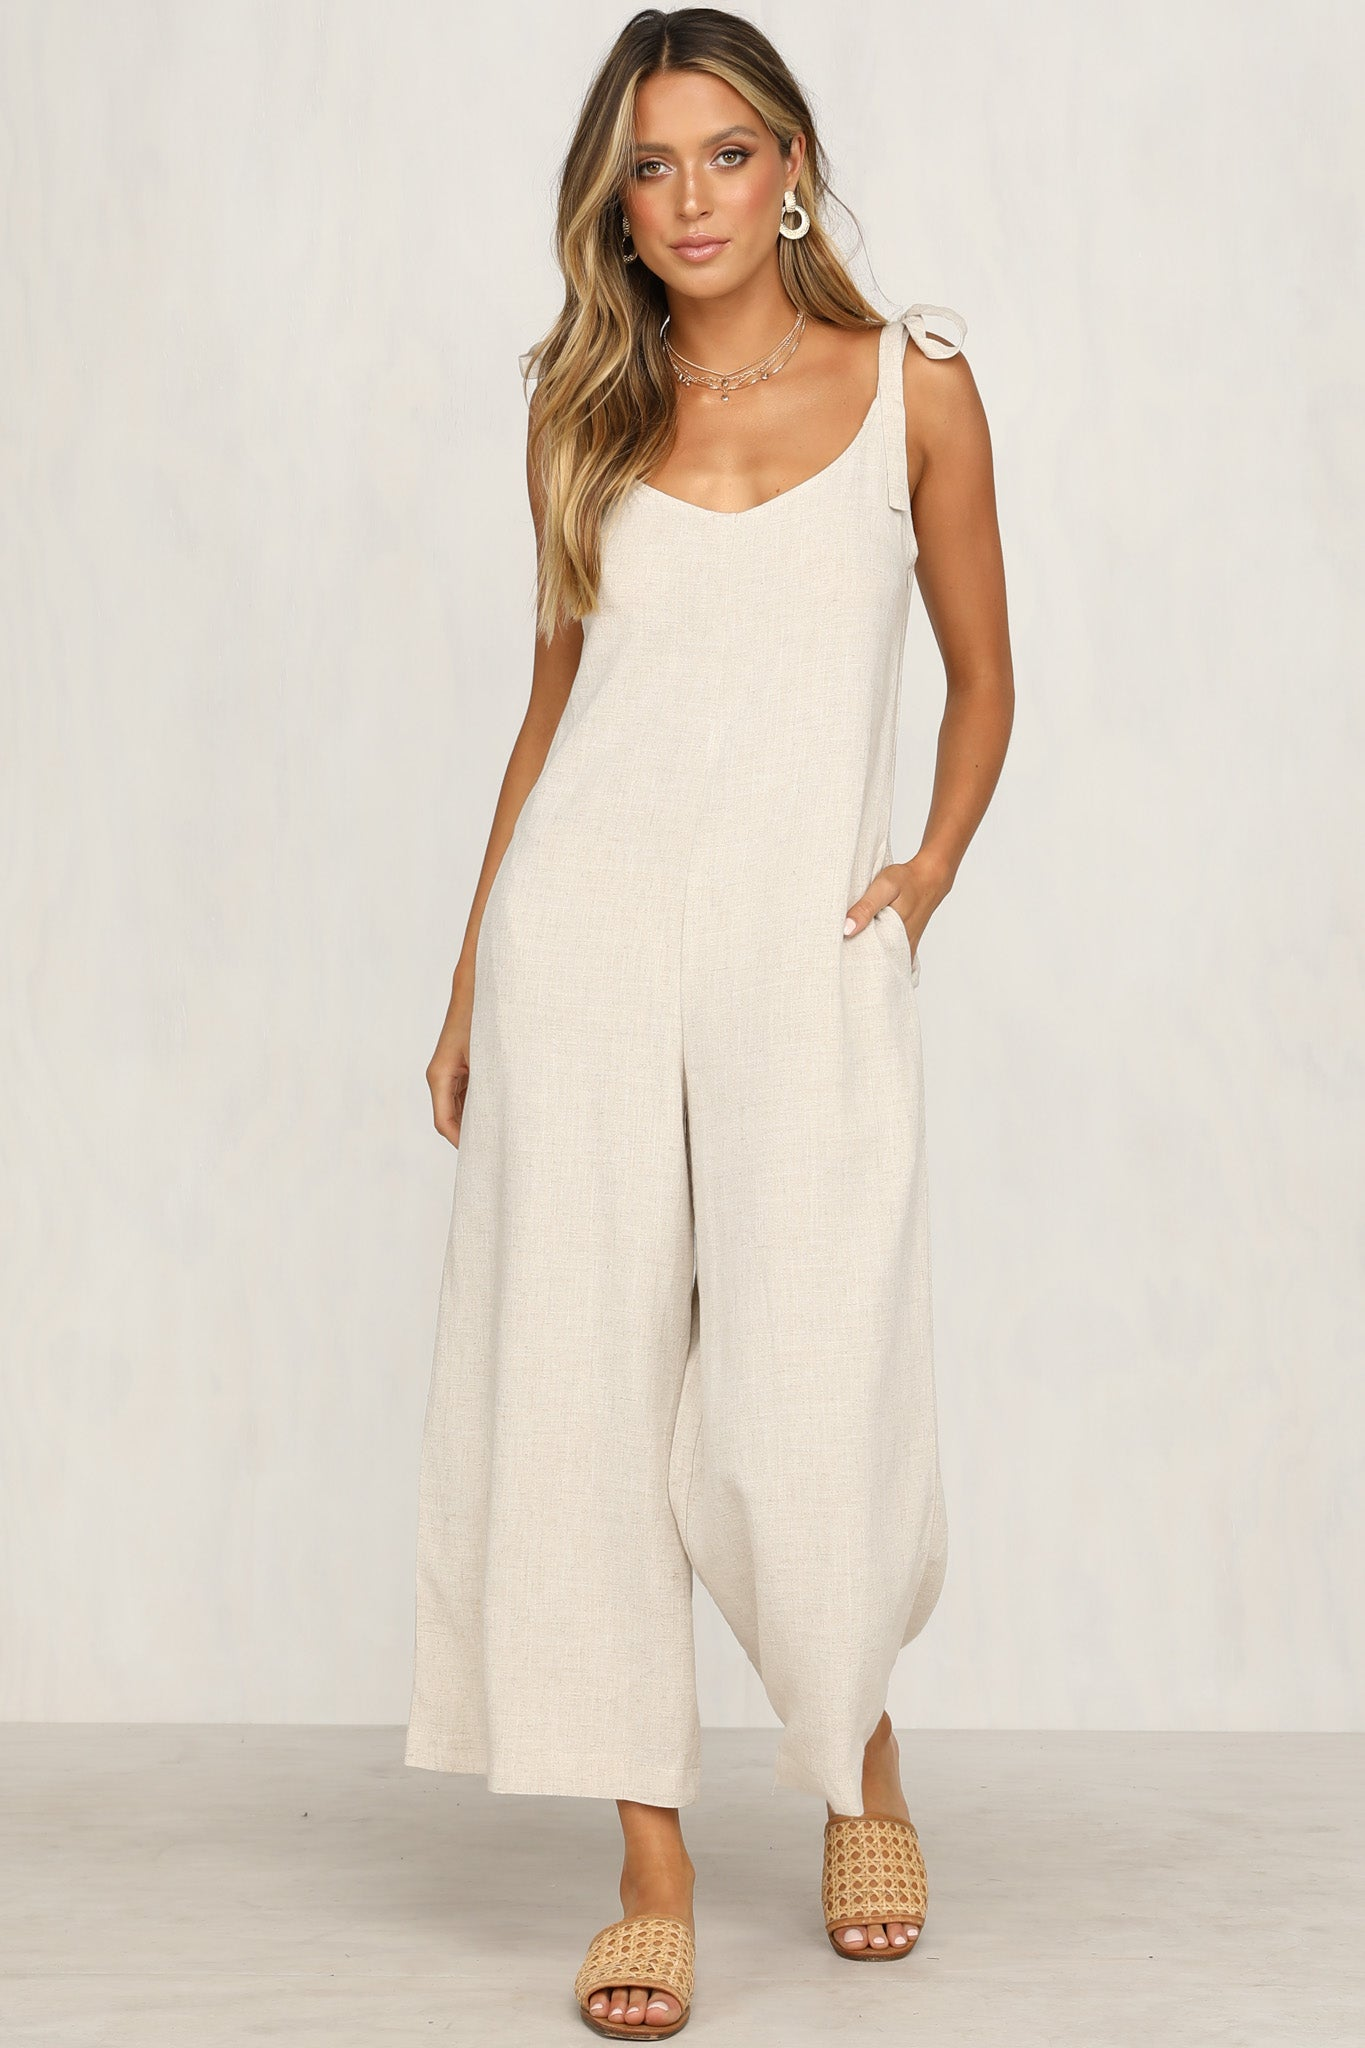 One More Time Jumpsuit (Beige)